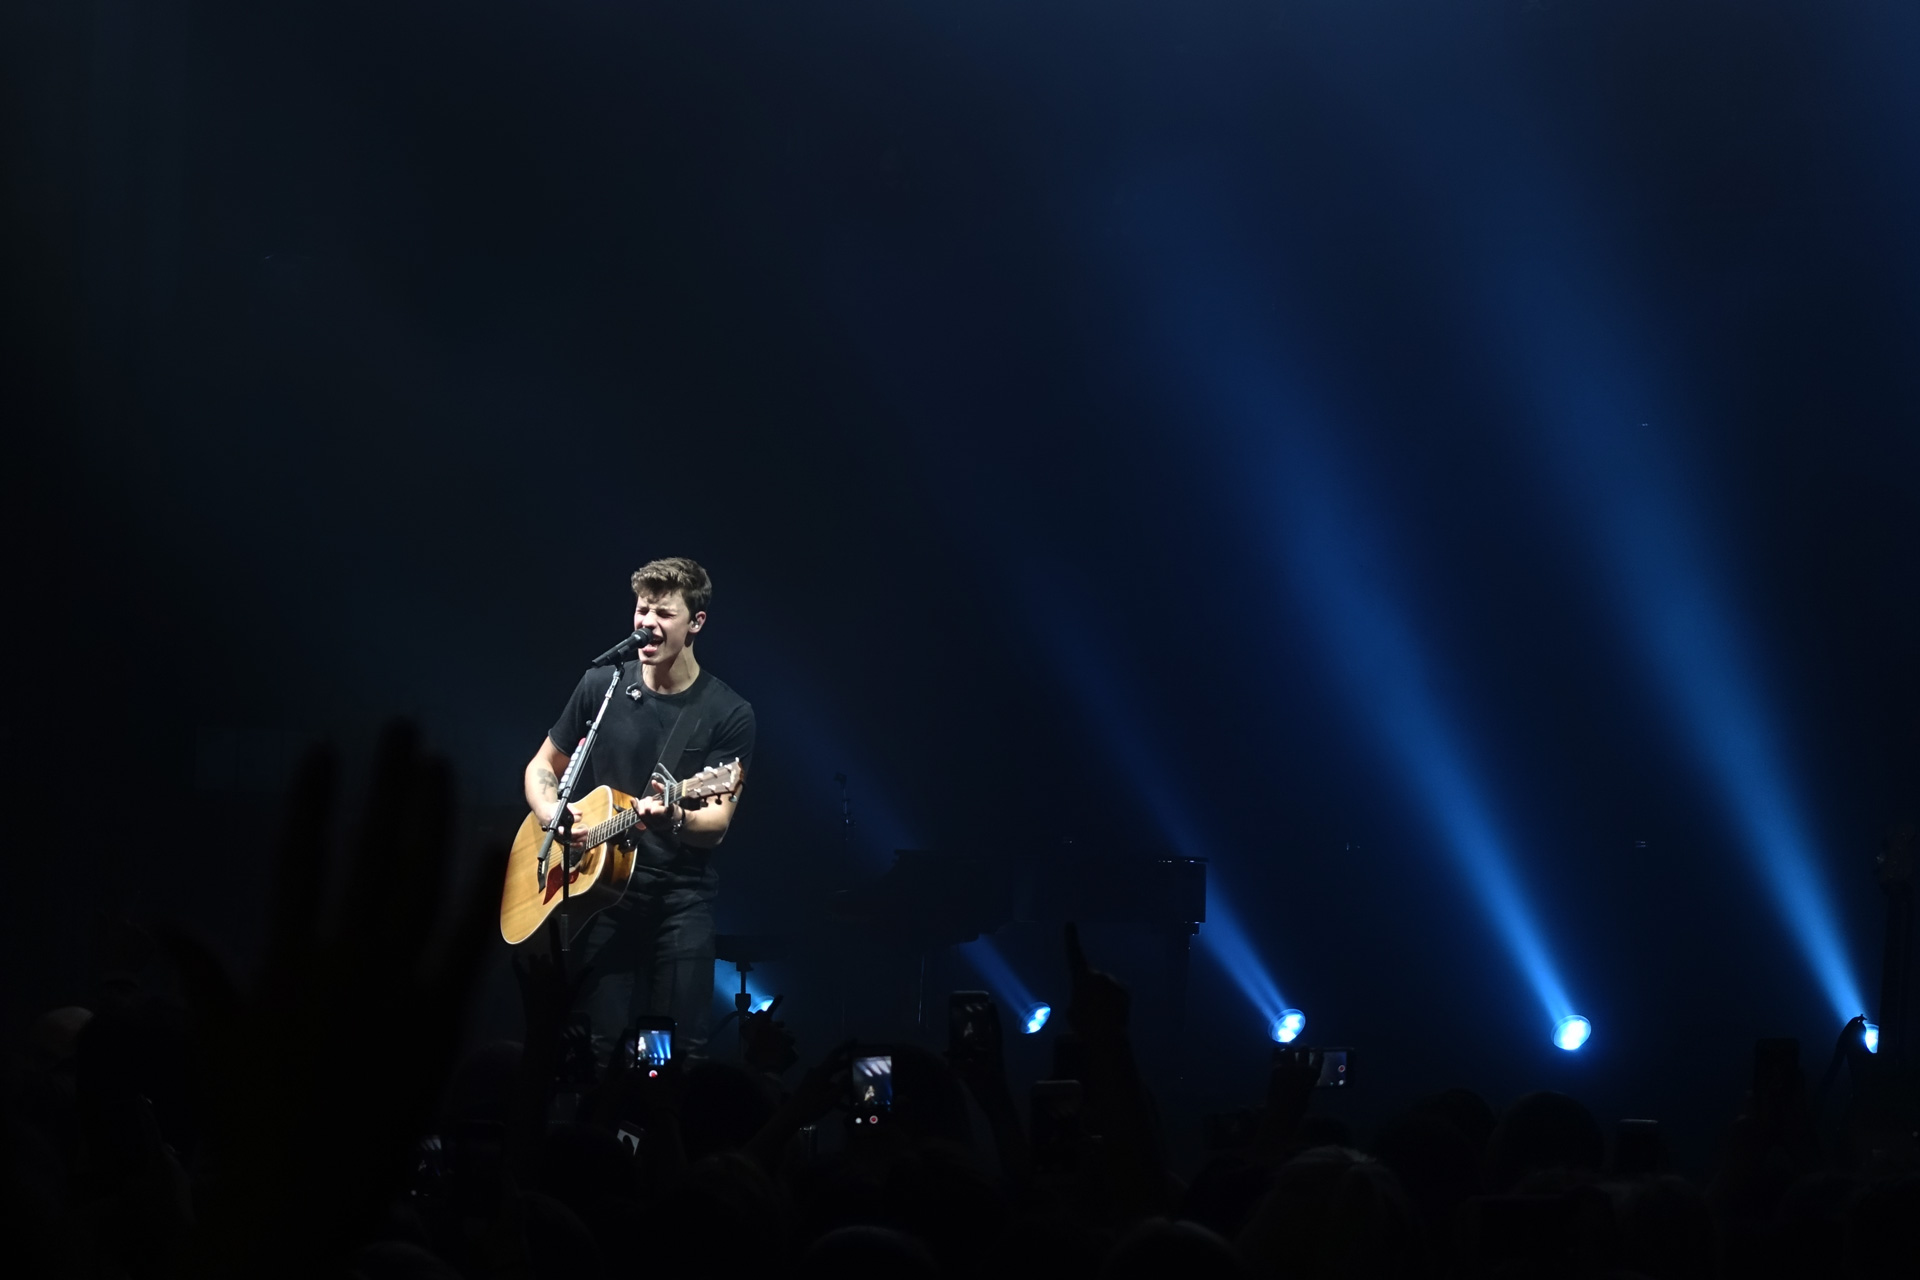 Shawn Mendes Enmore Theatre Sydney